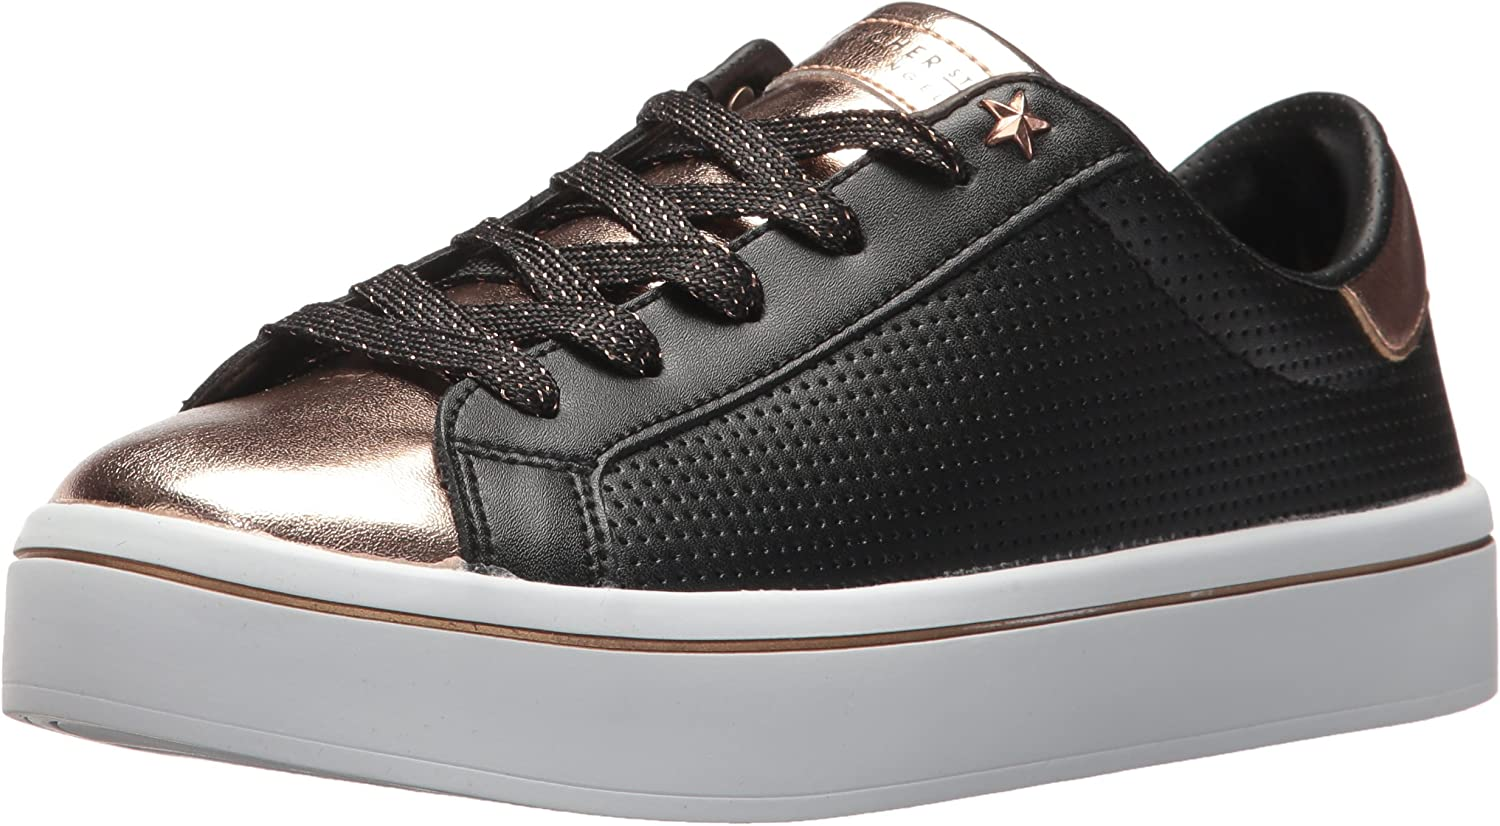 Skechers Womens Hi-Lite - Metallic Toe and Tongue Sneaker